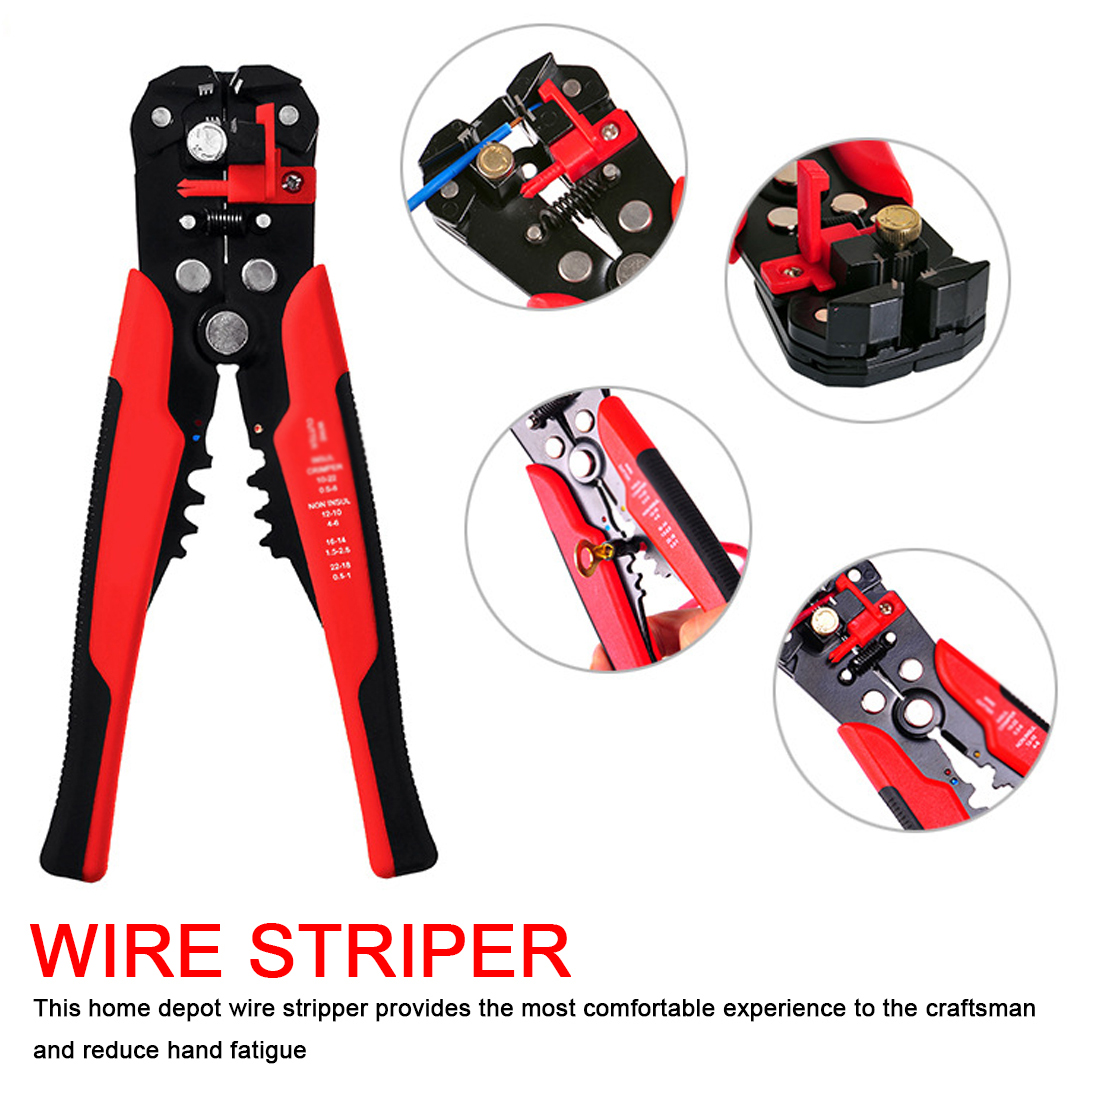 AWG 24-10 0.2-6.0mm2 Wire Stripper Multifunctional Automatic Stripping Pliers Cable Wire Stripping Crimping Tools Cutting